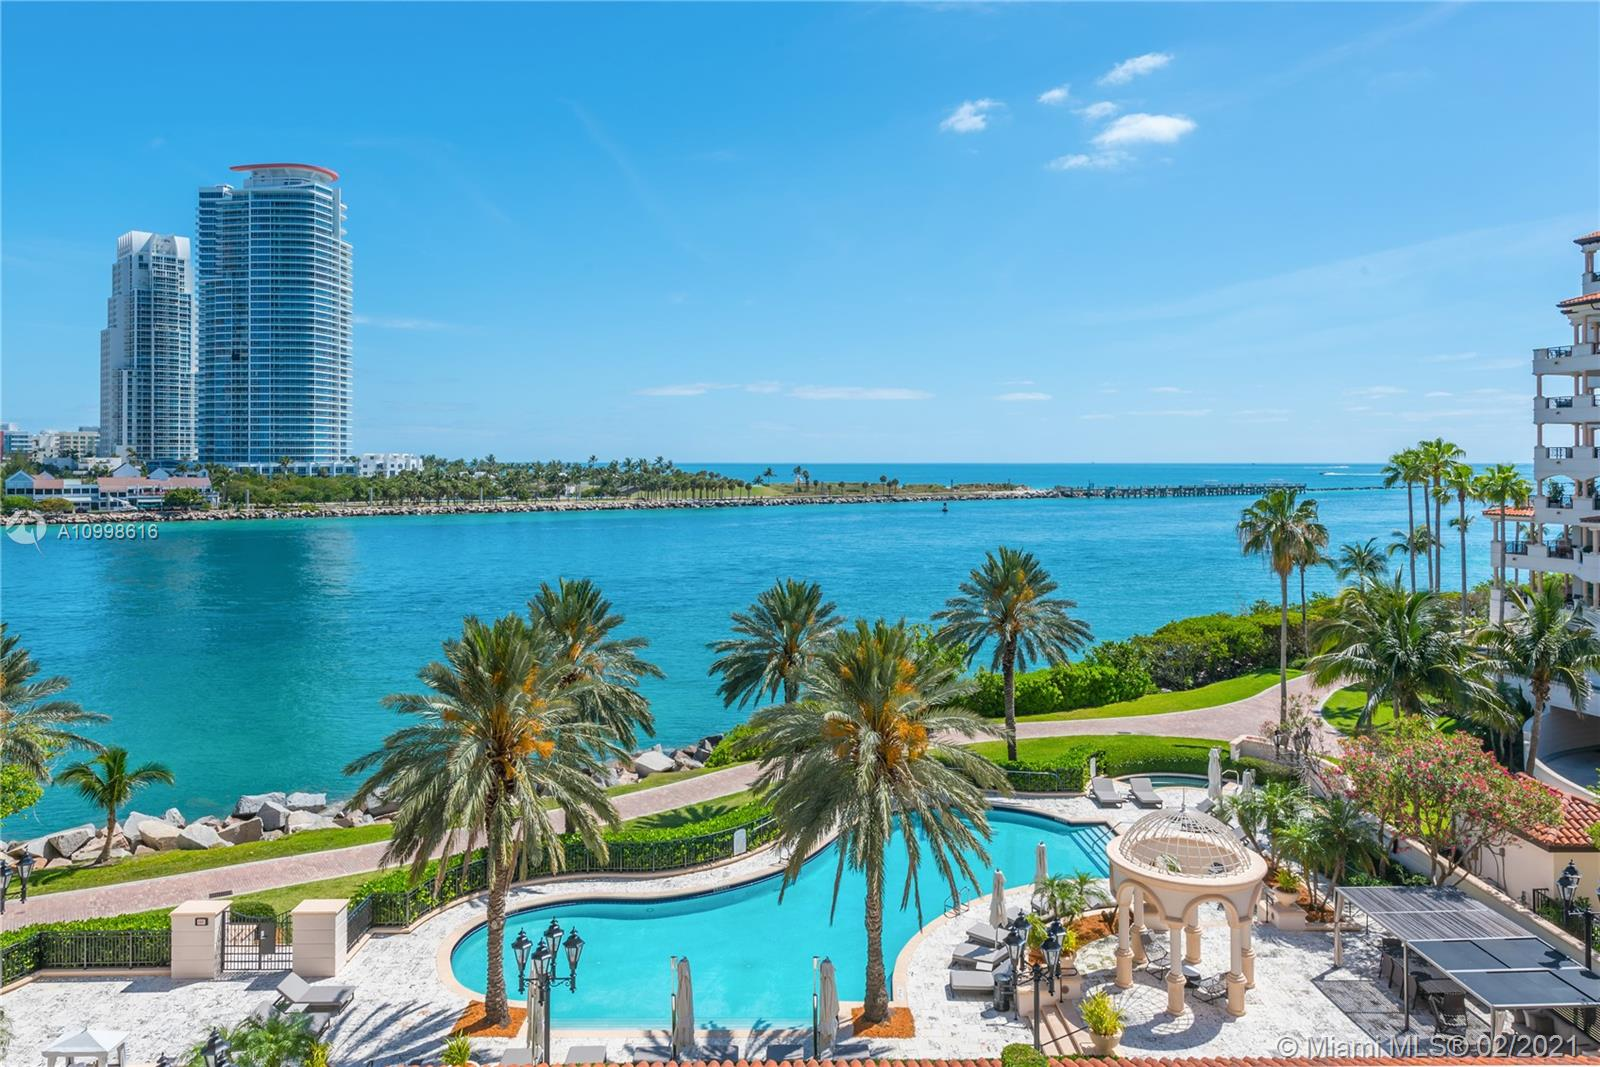 7143 Fisher Island Dr, Unit #7143 Luxury Real Estate